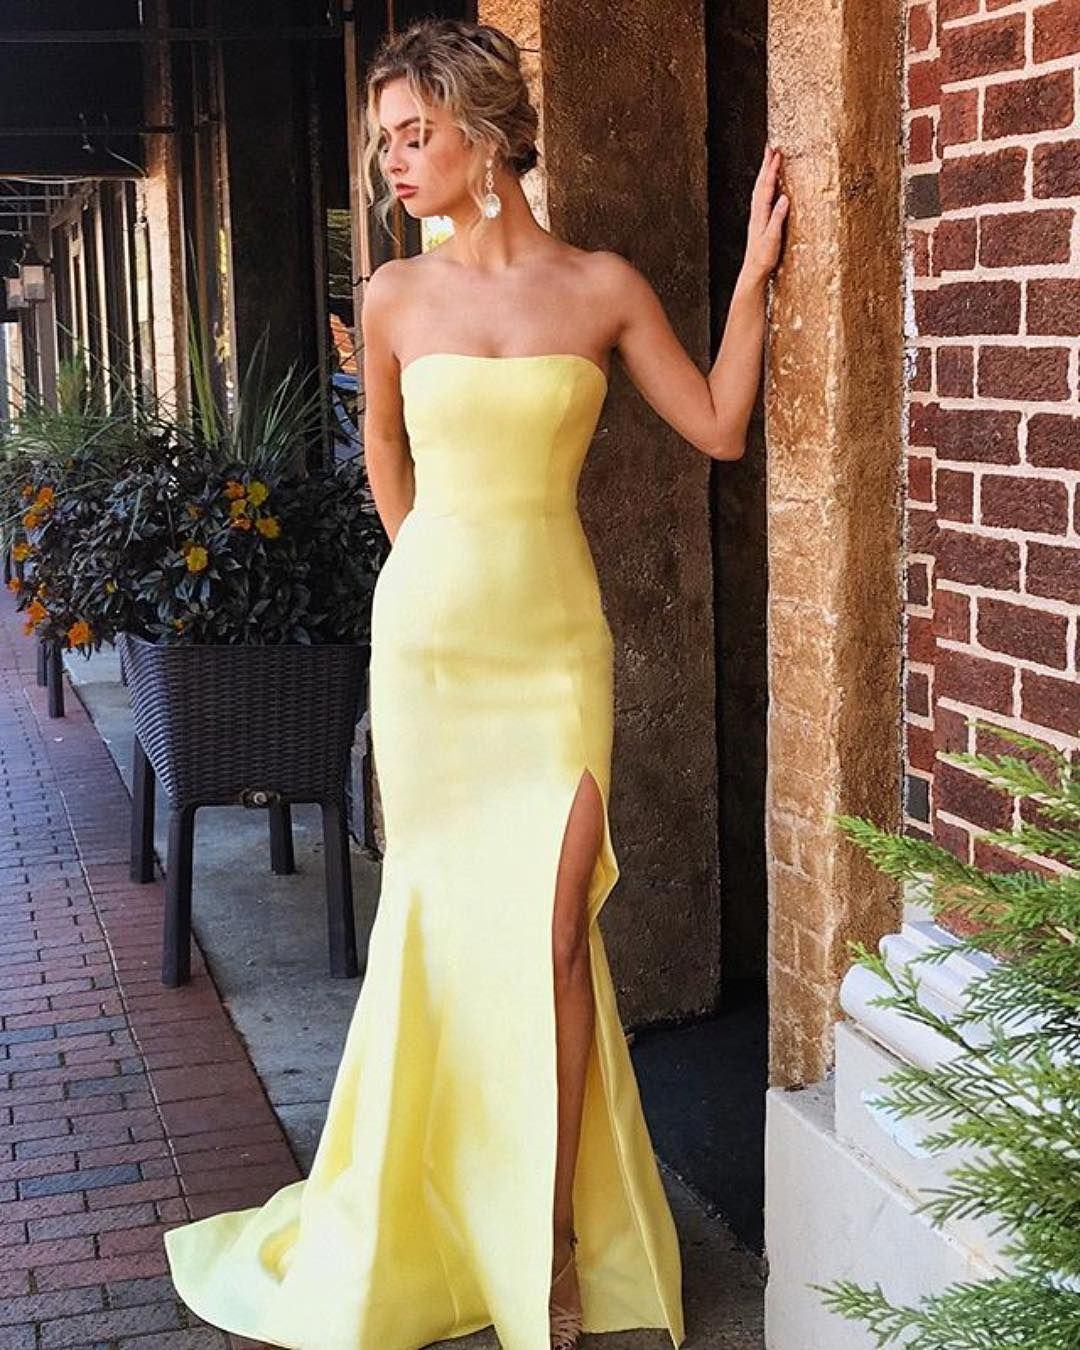 a37dad32f Yellow Strapless Party Dress, Mermaid Long Evening Dress, Sexy Slit ...